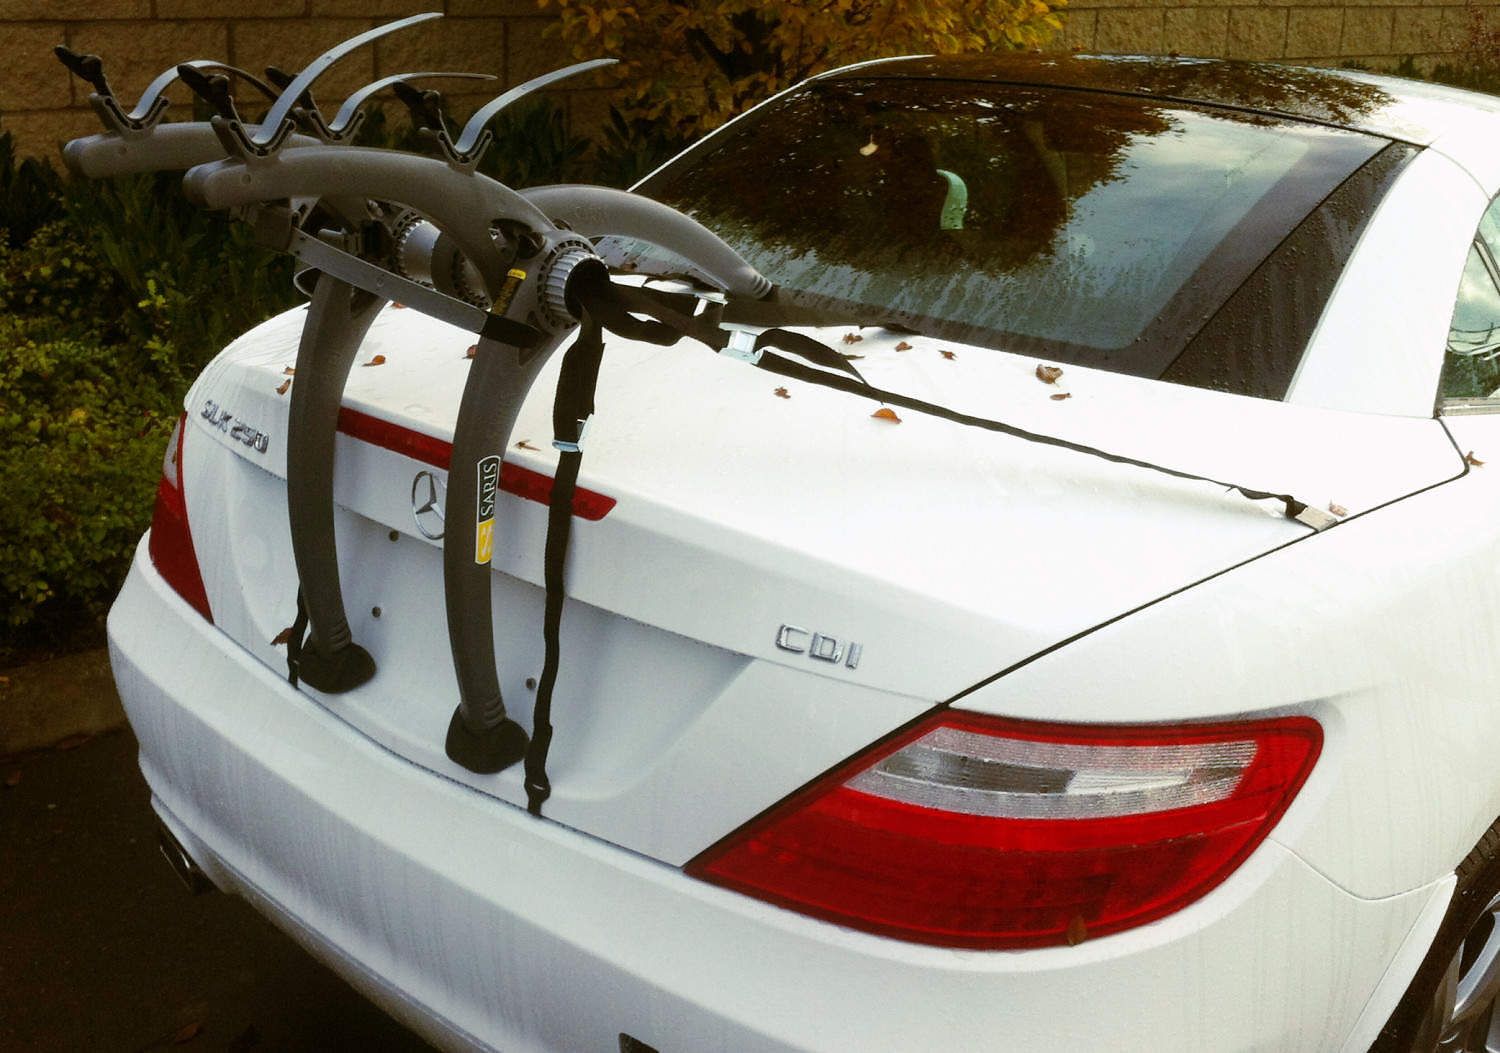 Mercedes Slk Bike Rack Modern Arc Based Design